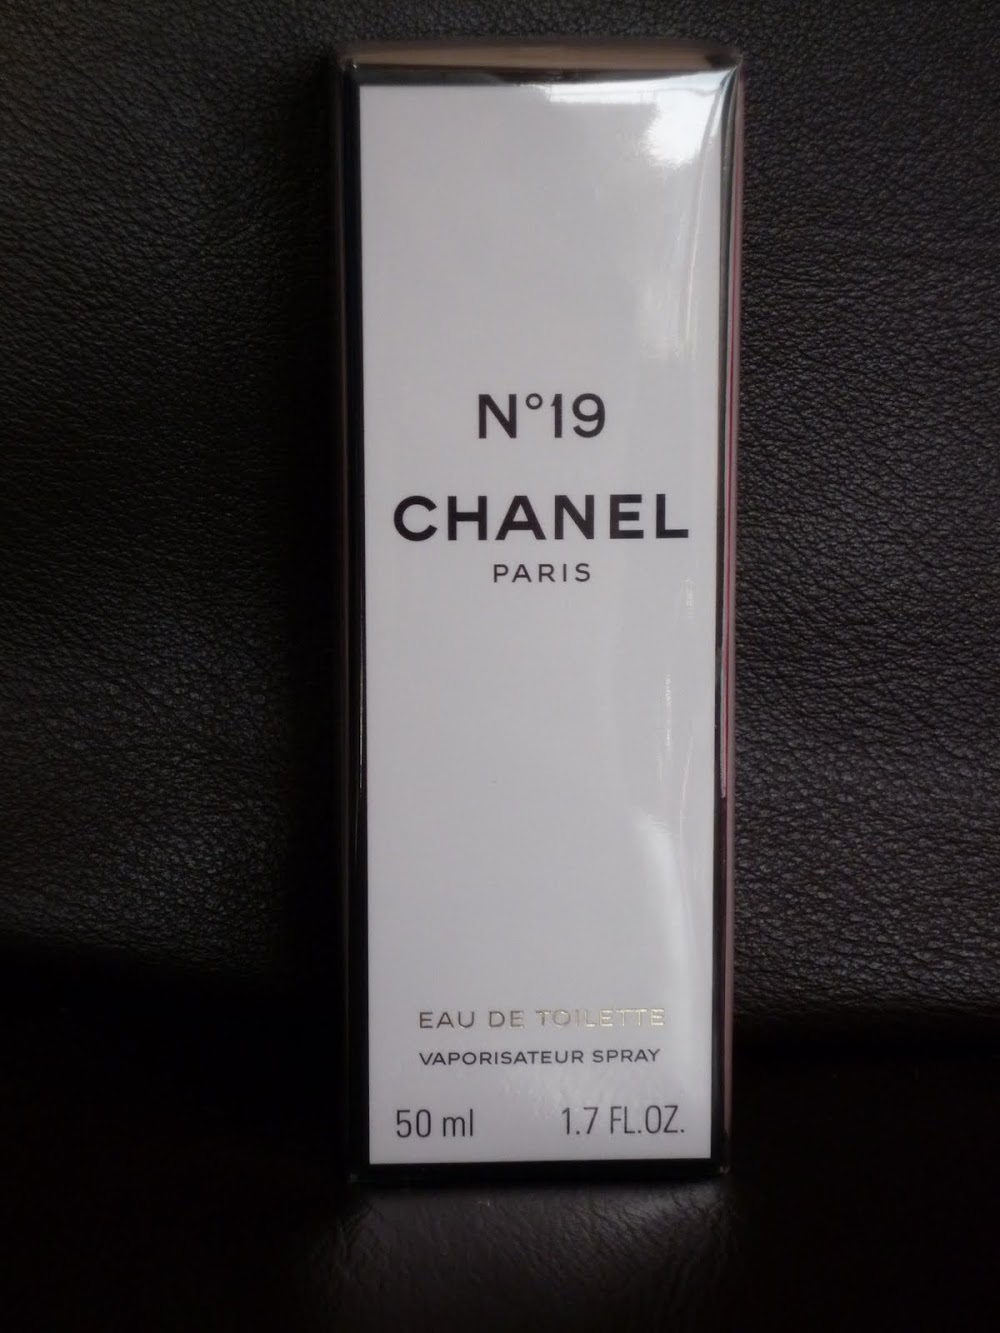 Winner of the Chanel No 19 Give-Away